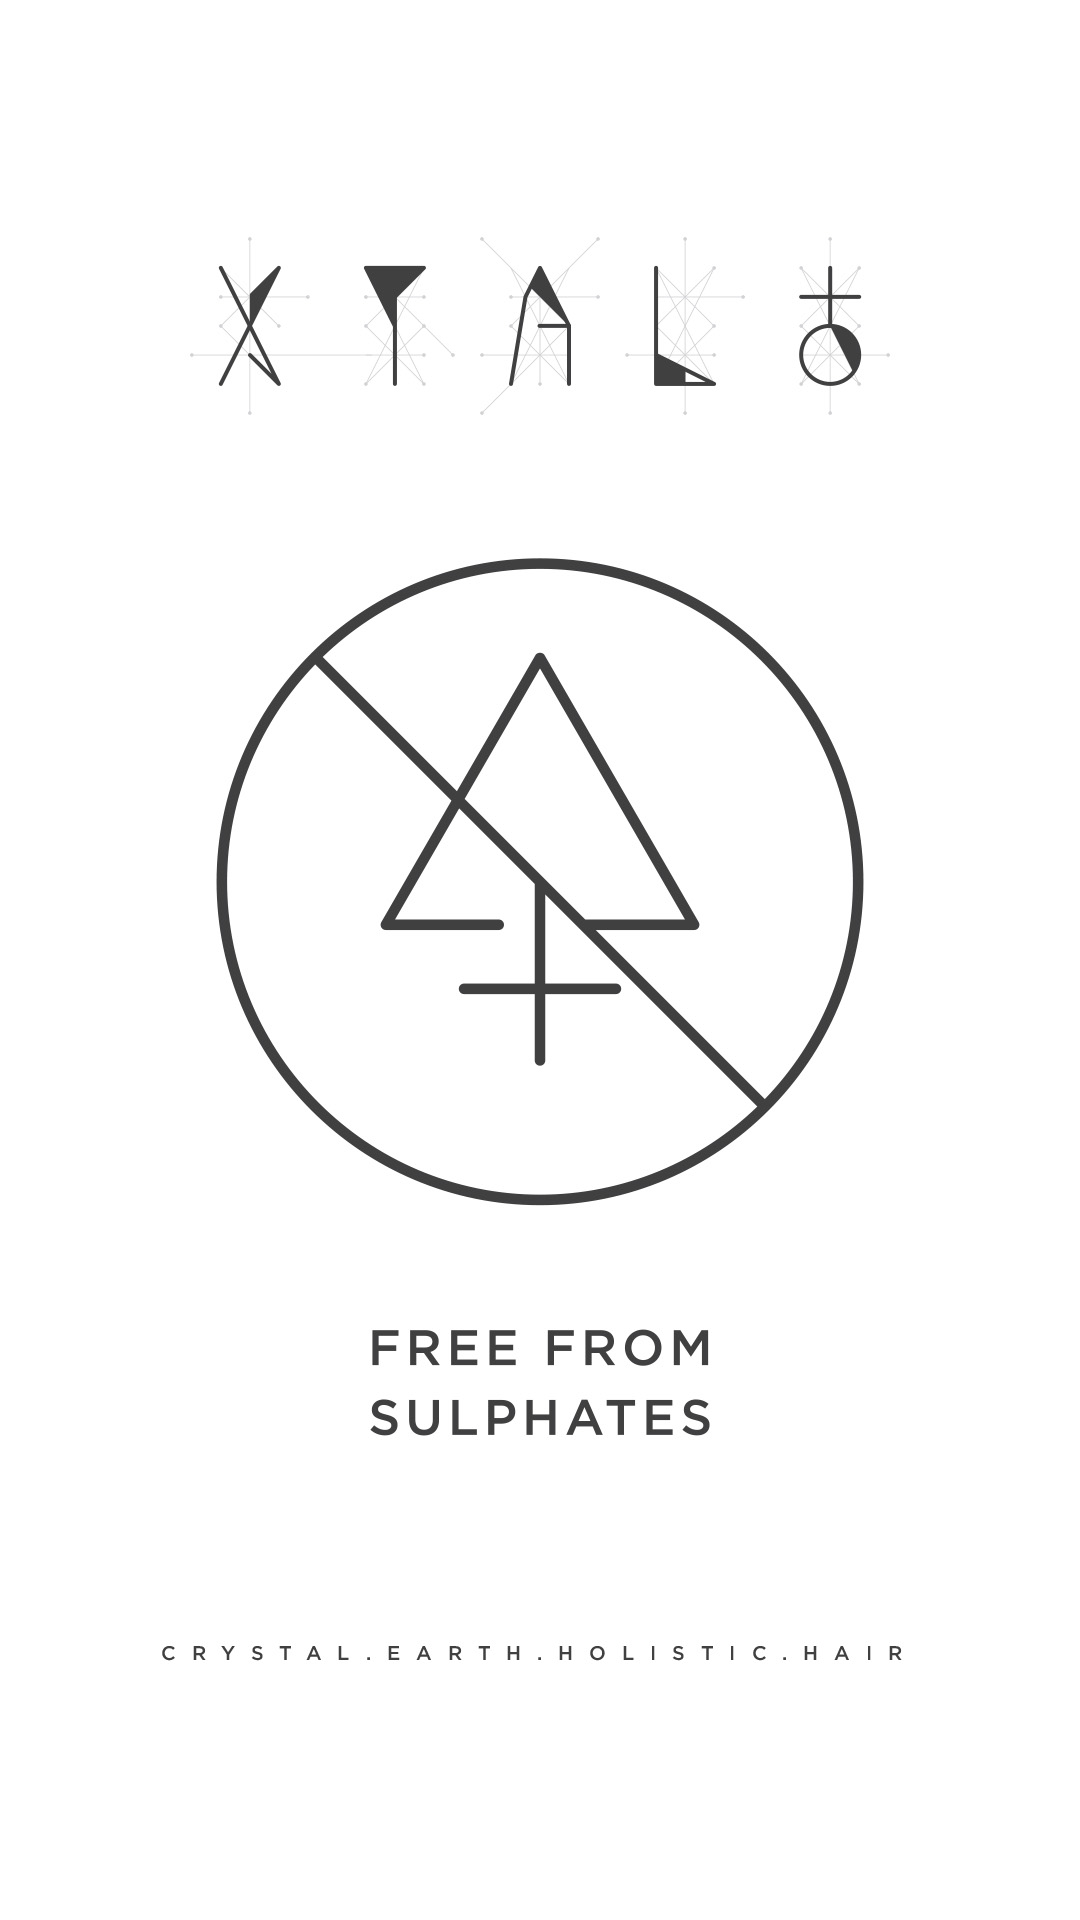 Why sulphates are bad for your hair + the environment